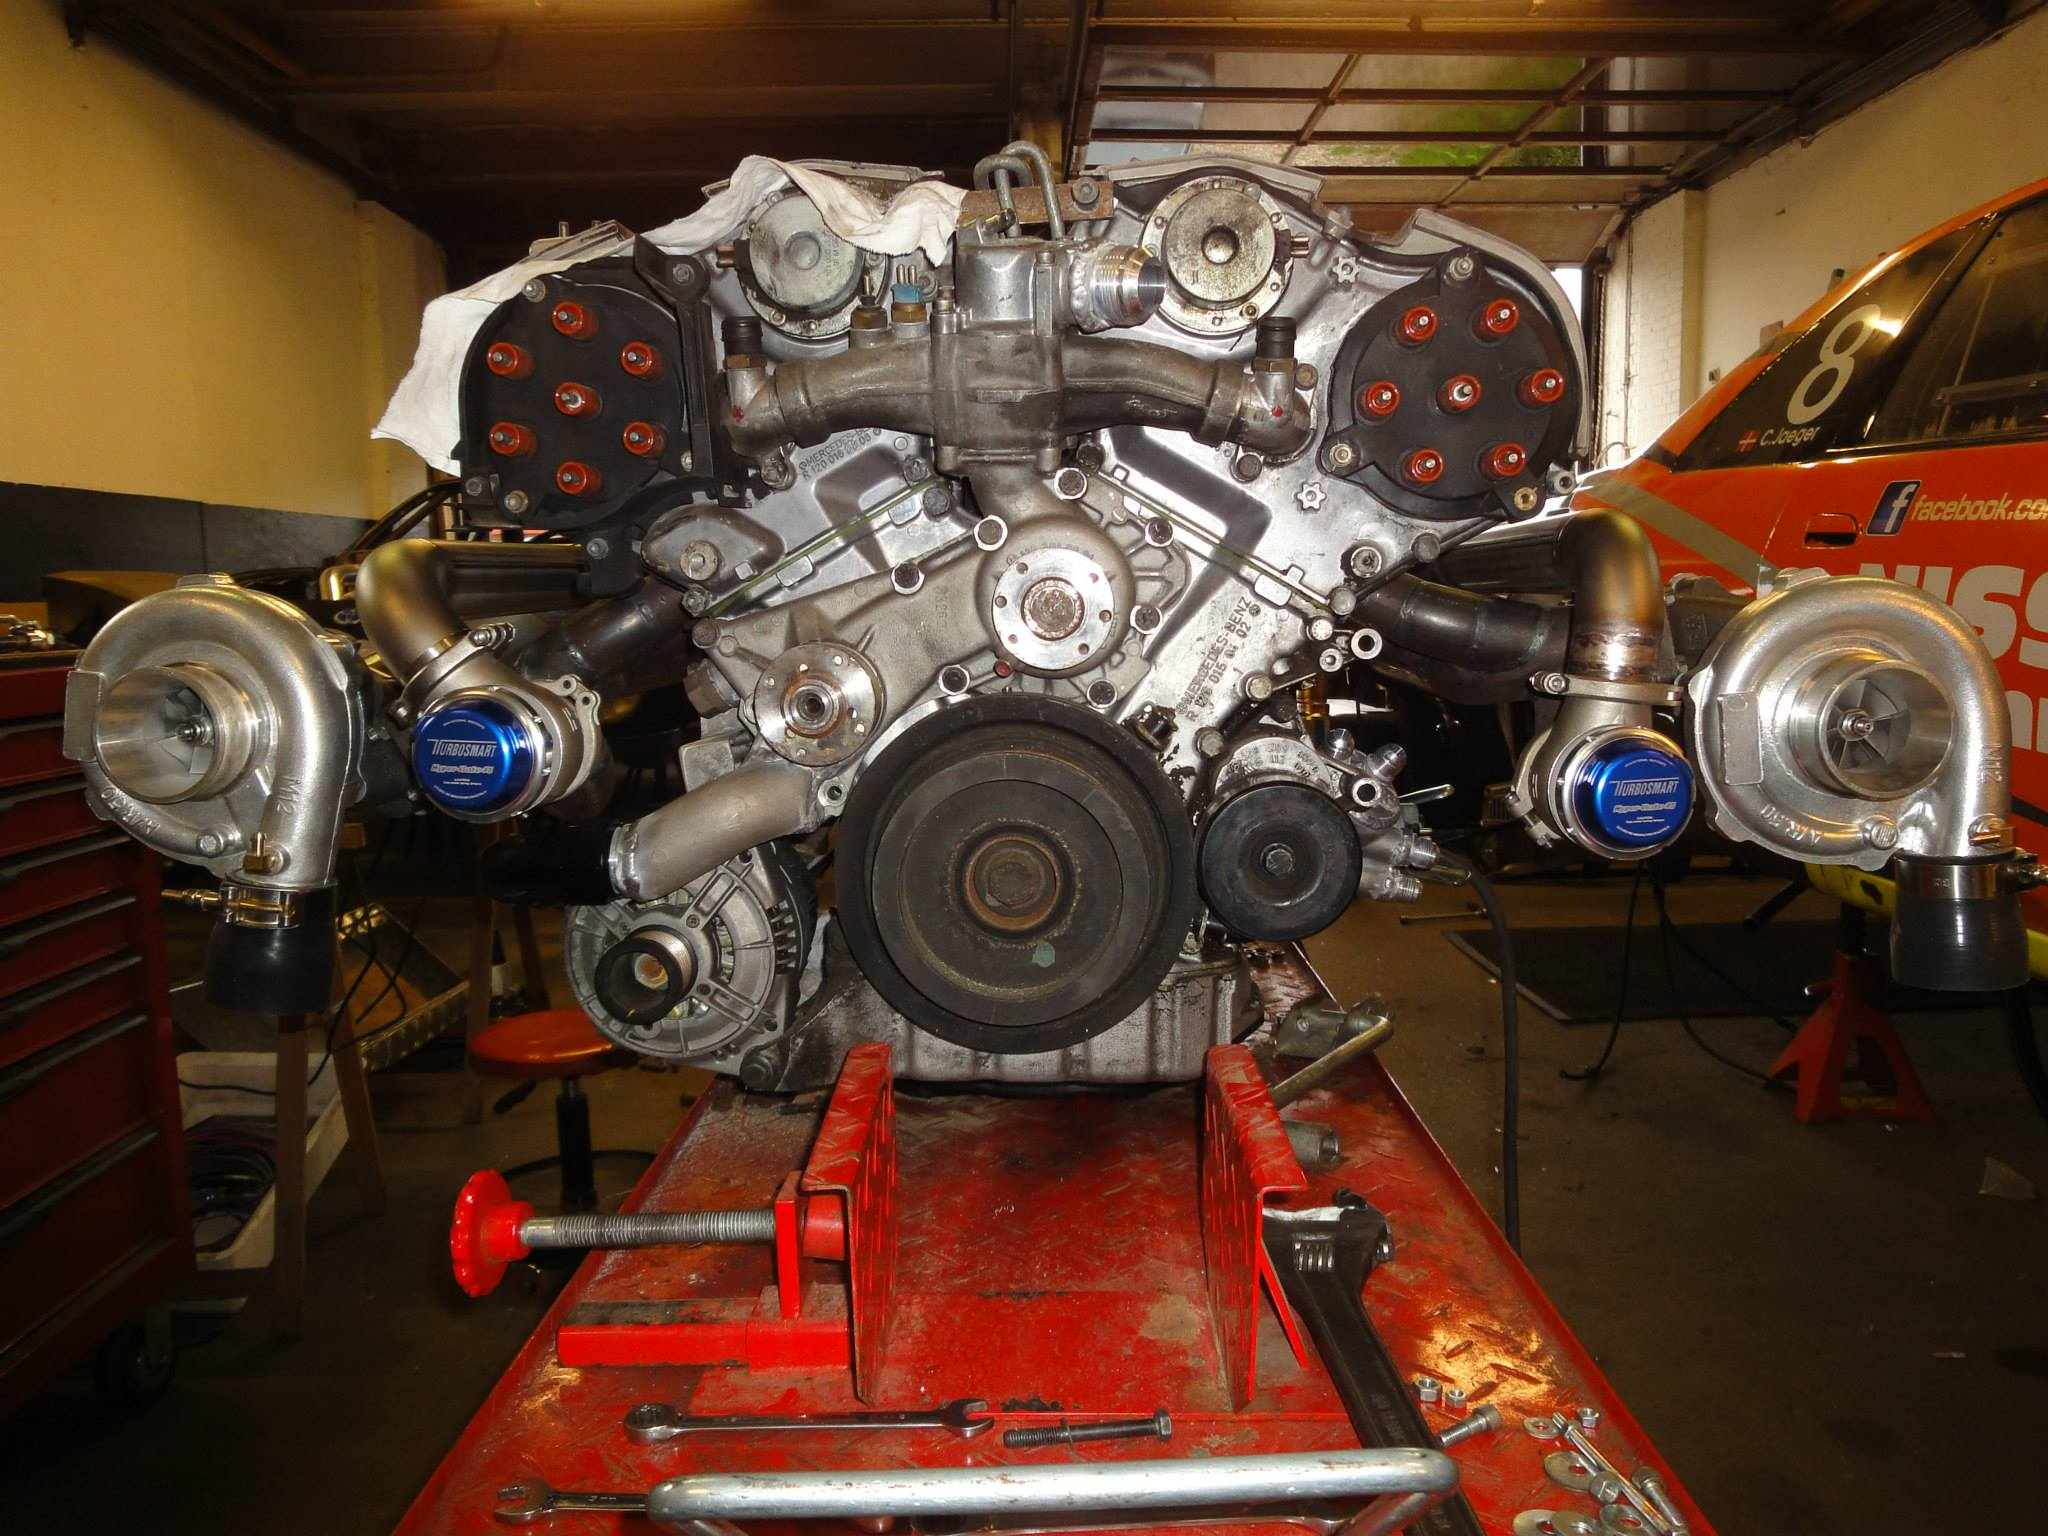 Nissan r33 with a twin turbo mercedes v12 engine swap depot for Mercedes benz v 12 engine